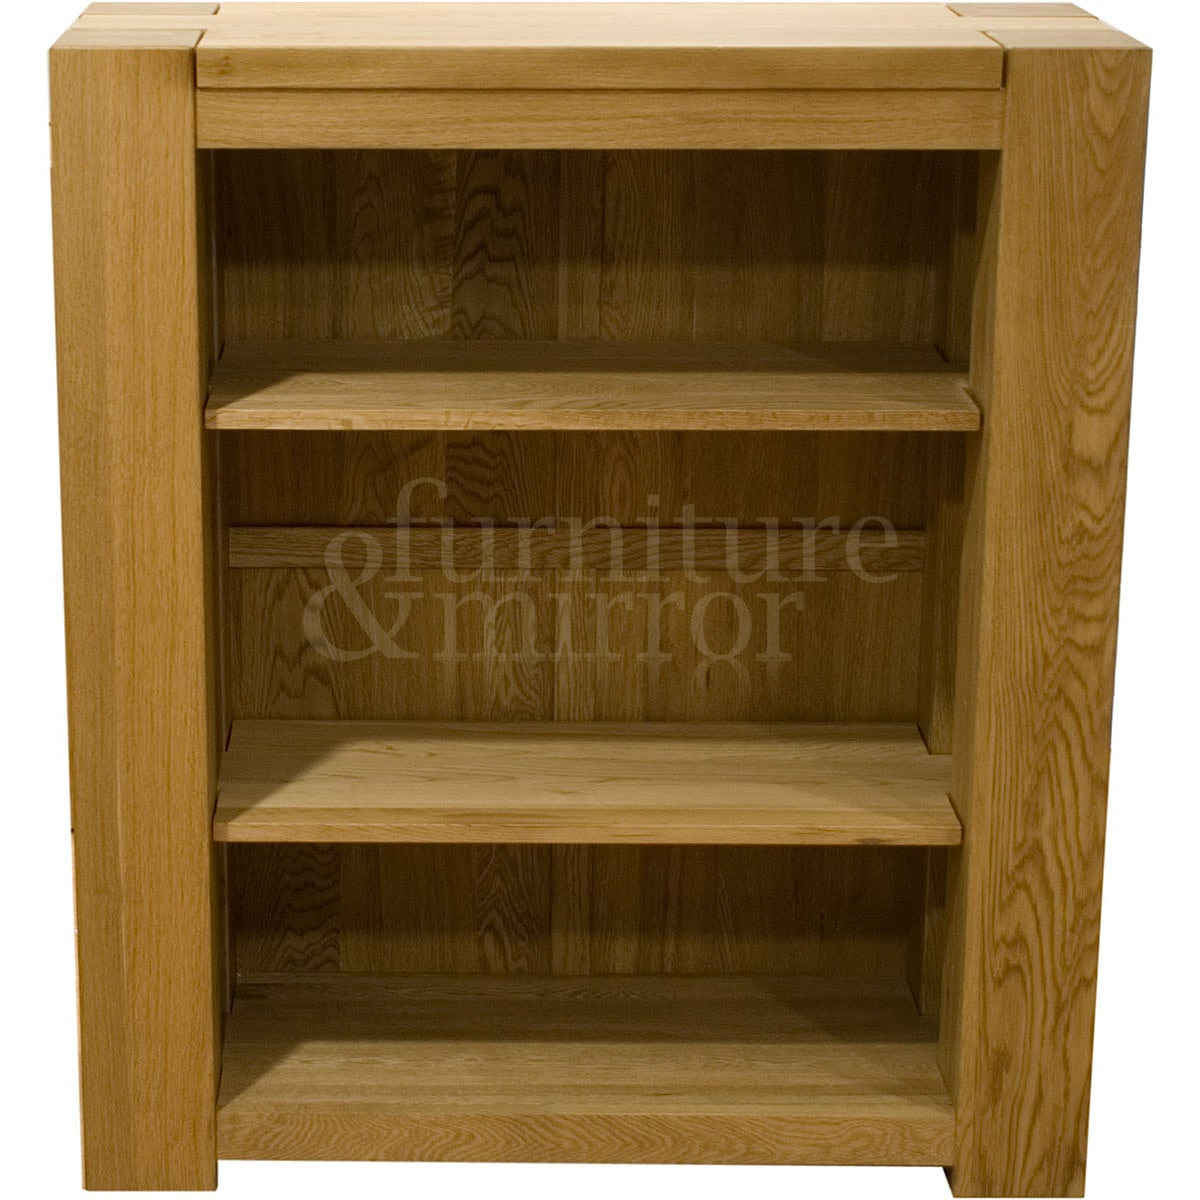 toulouse small three shelf bookcase furniture and mirror. Black Bedroom Furniture Sets. Home Design Ideas